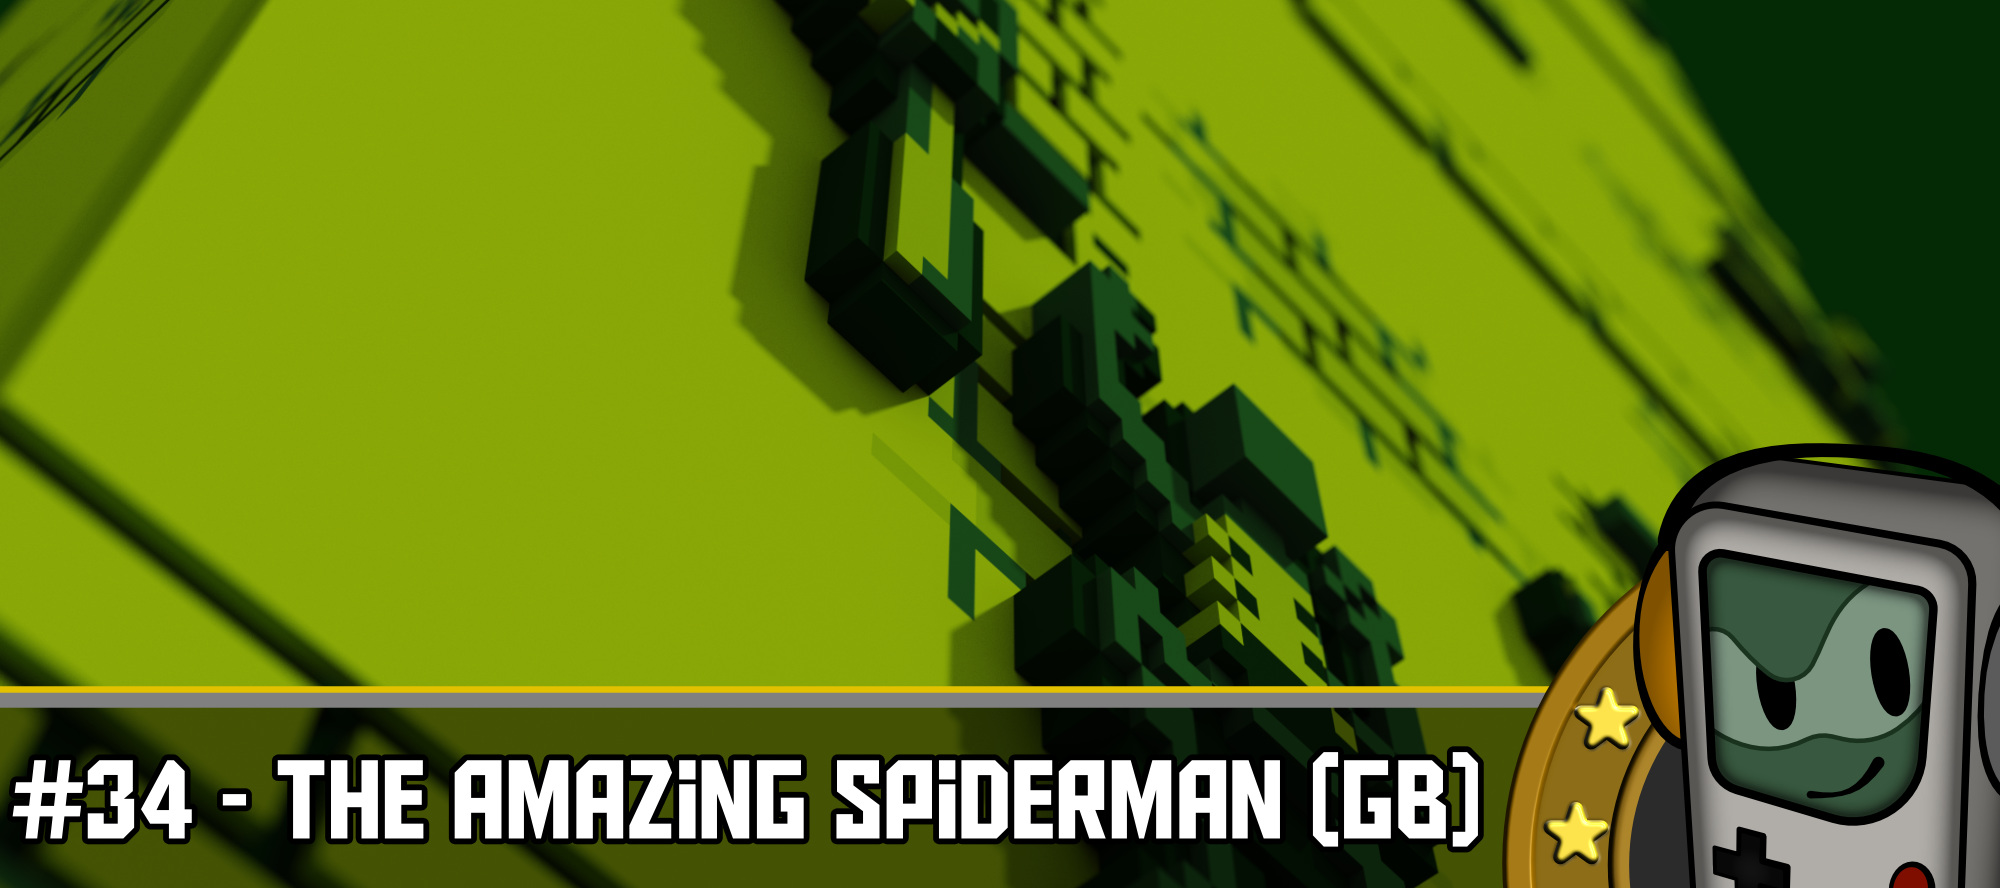 Spiderman2000 900x400 - The Amazing Spiderman (GB) - Spindelmannen und Läderlappen